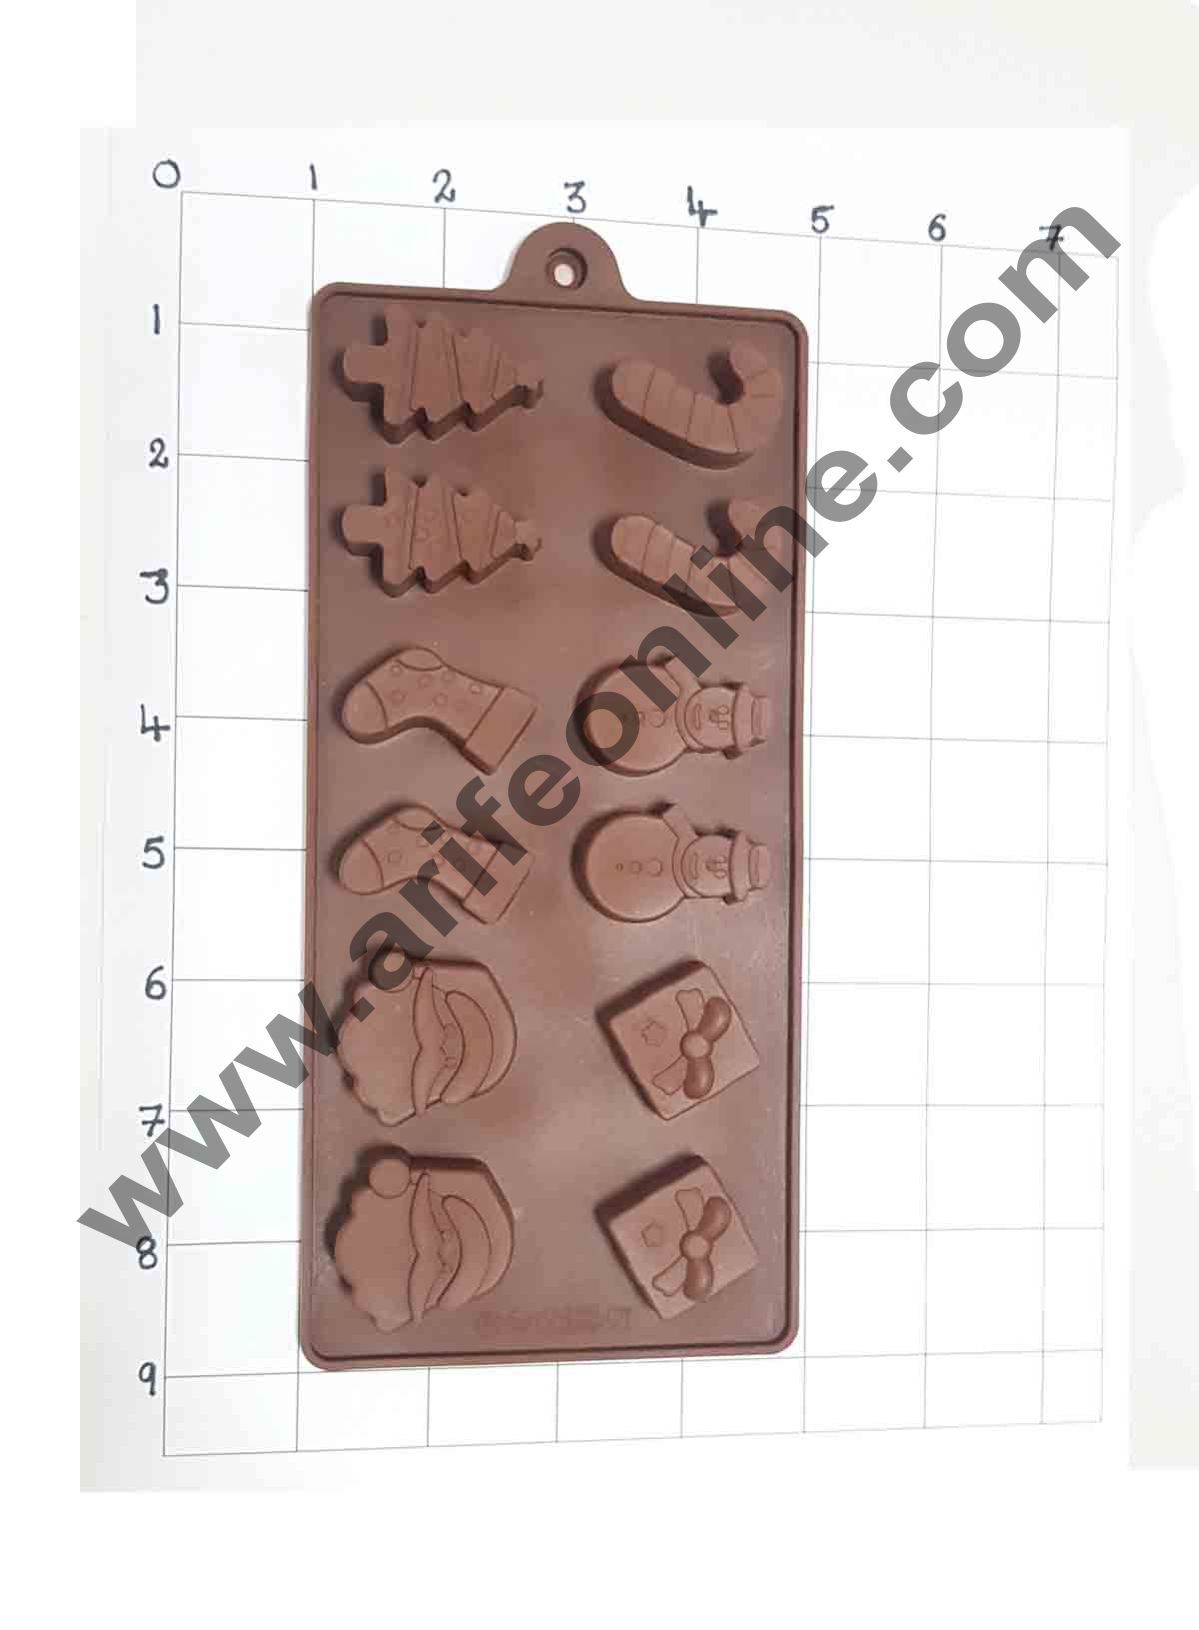 Cake Decor Silicon 12 Cavity New Christmas Design Brown Chocolate Mould, Ice Mould, Chocolate Decorating Mould